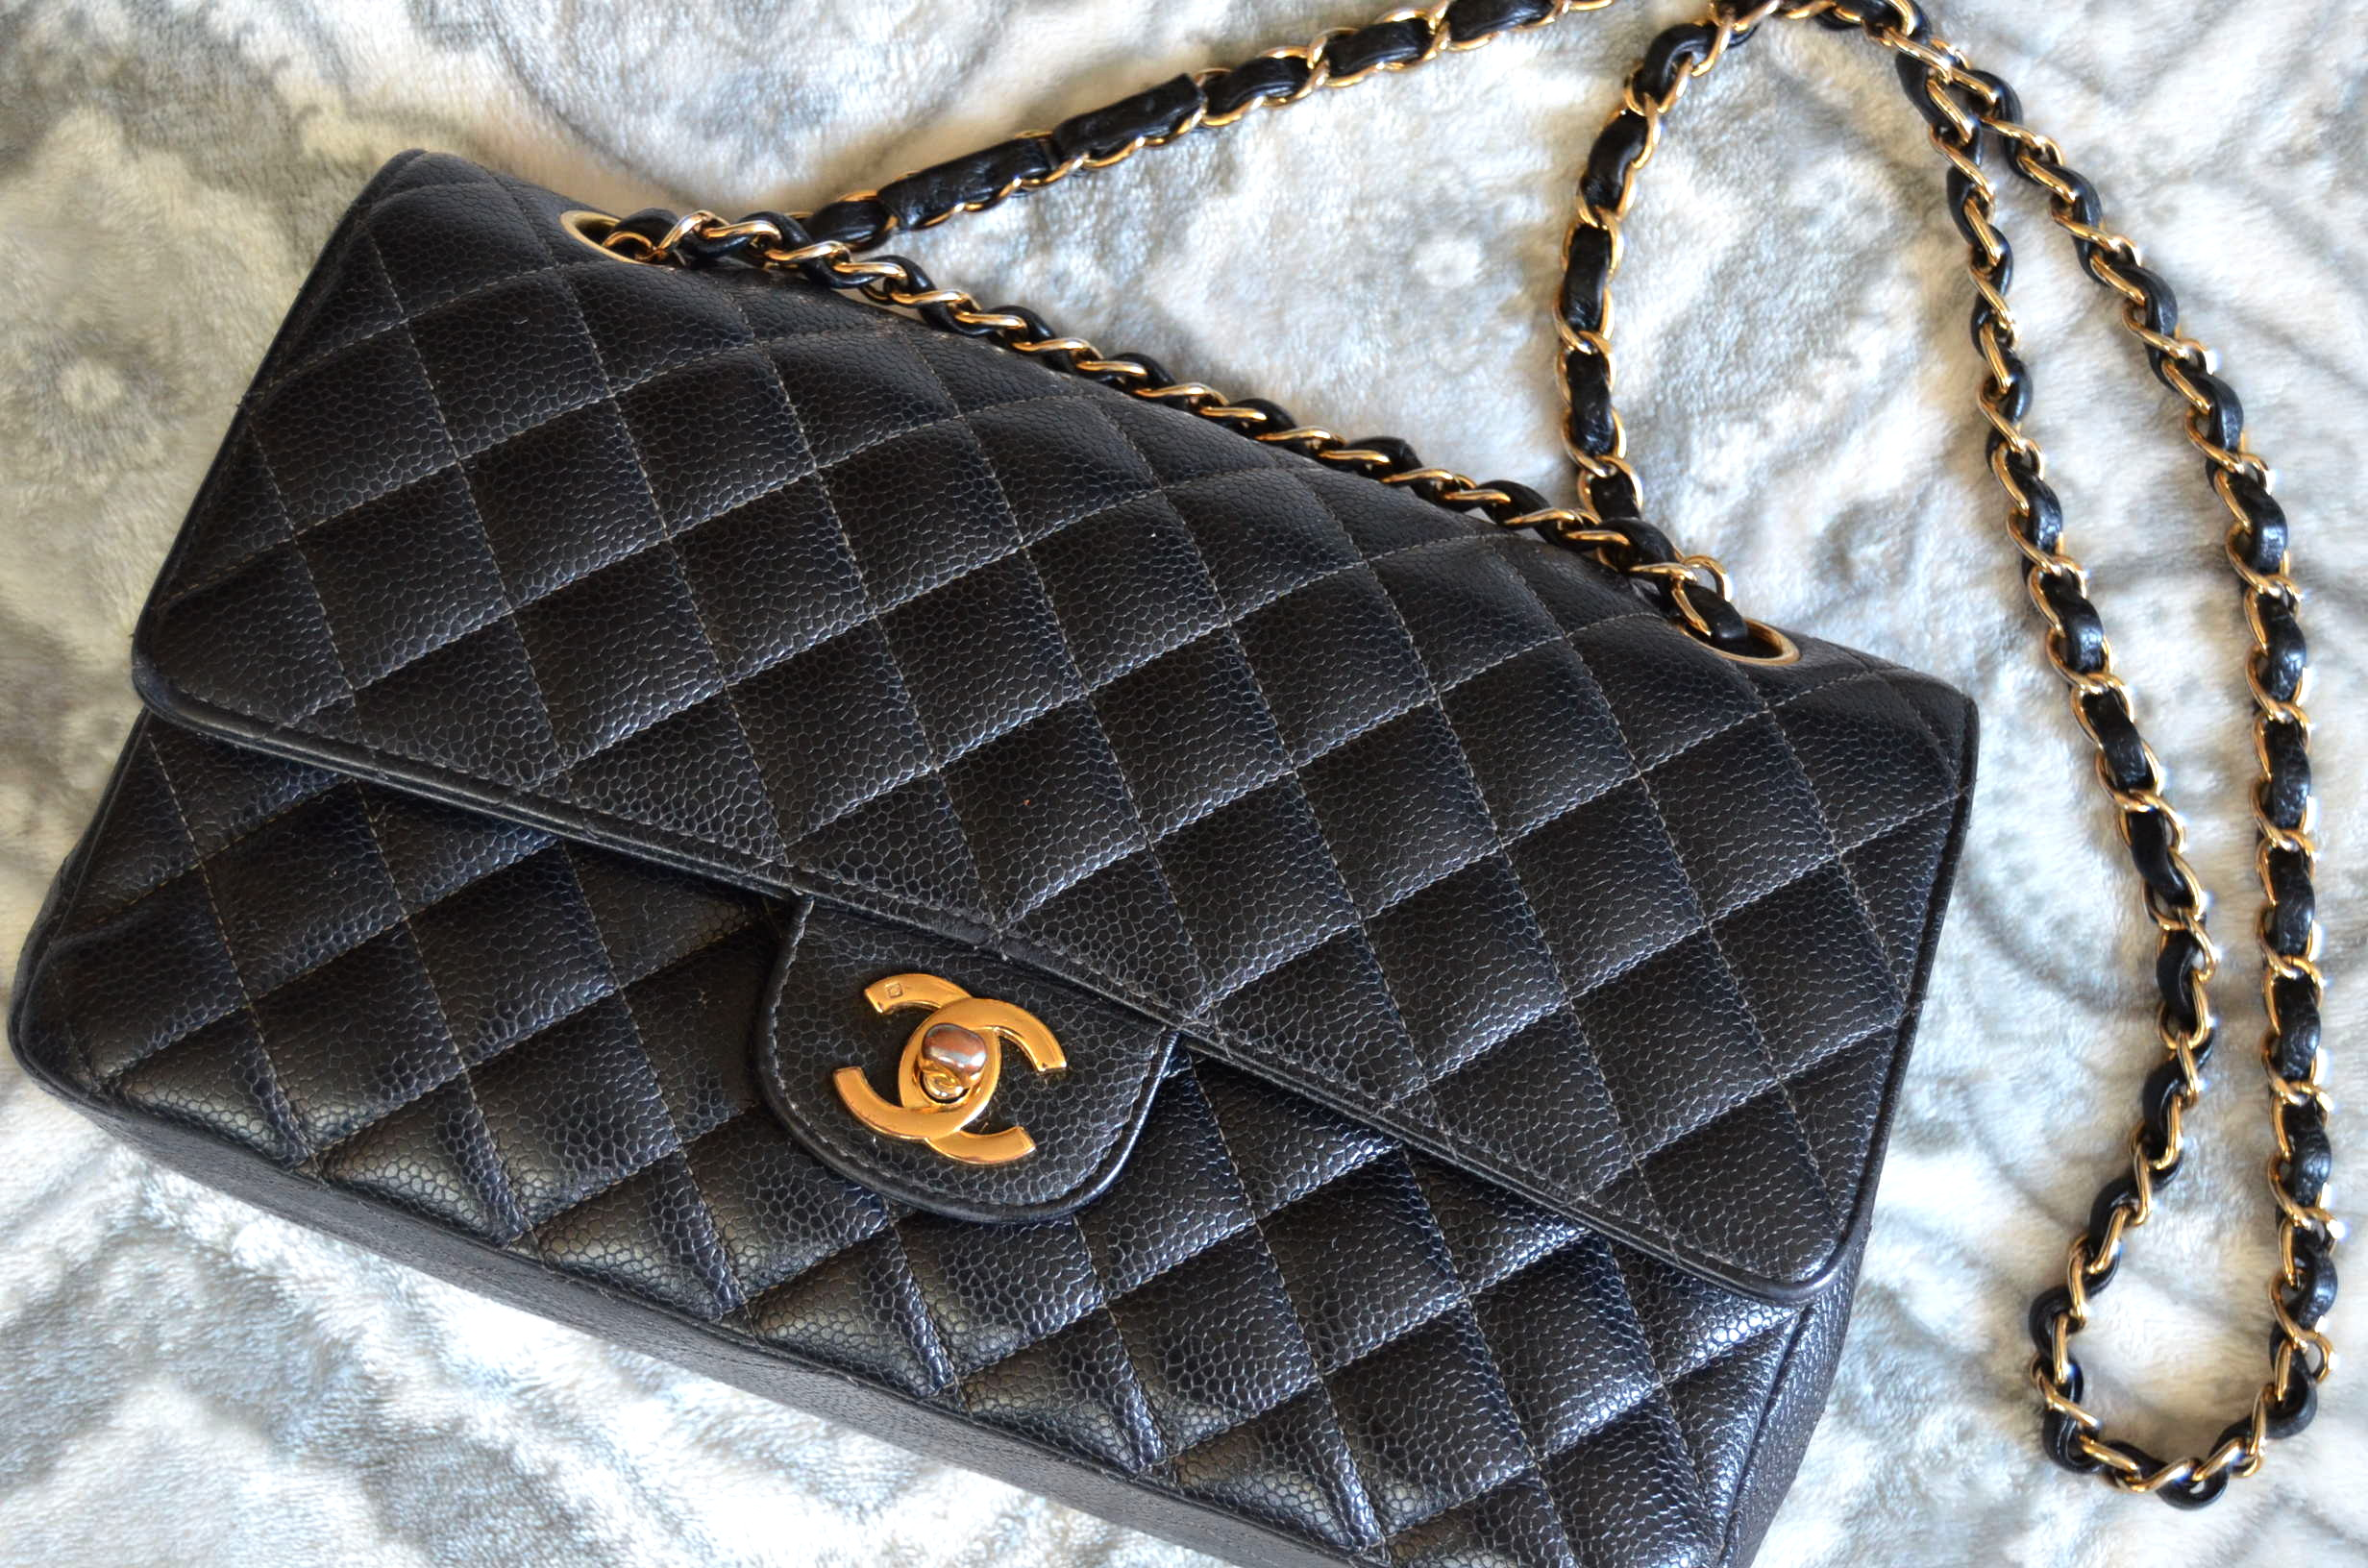 timeless 2.55 double flap caviar Chanel bag